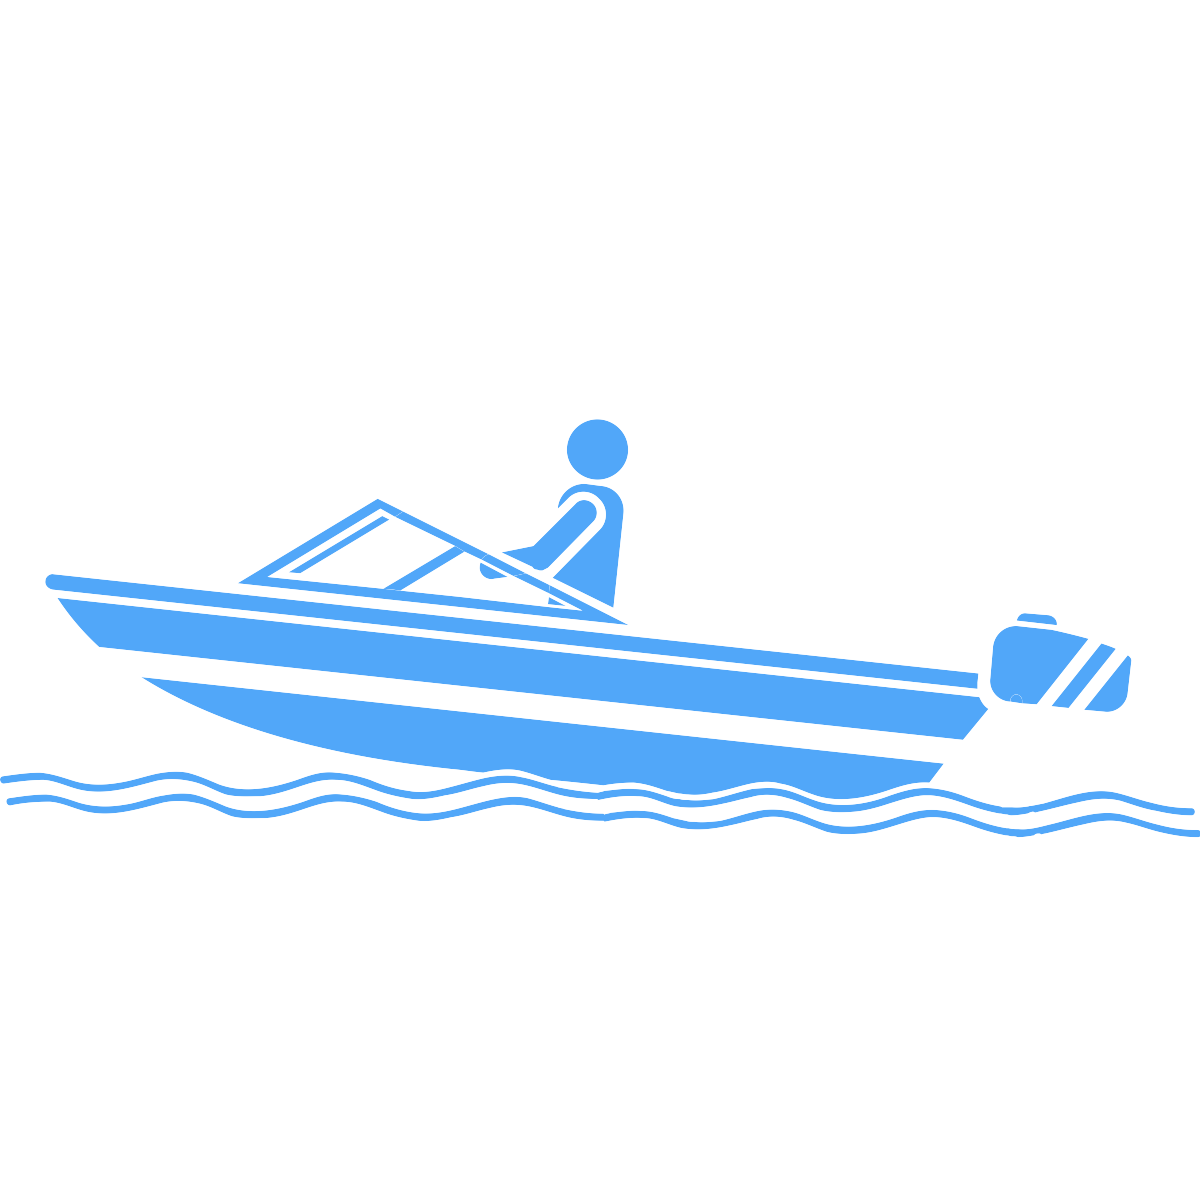 Recreation icon - a person driving a small boat